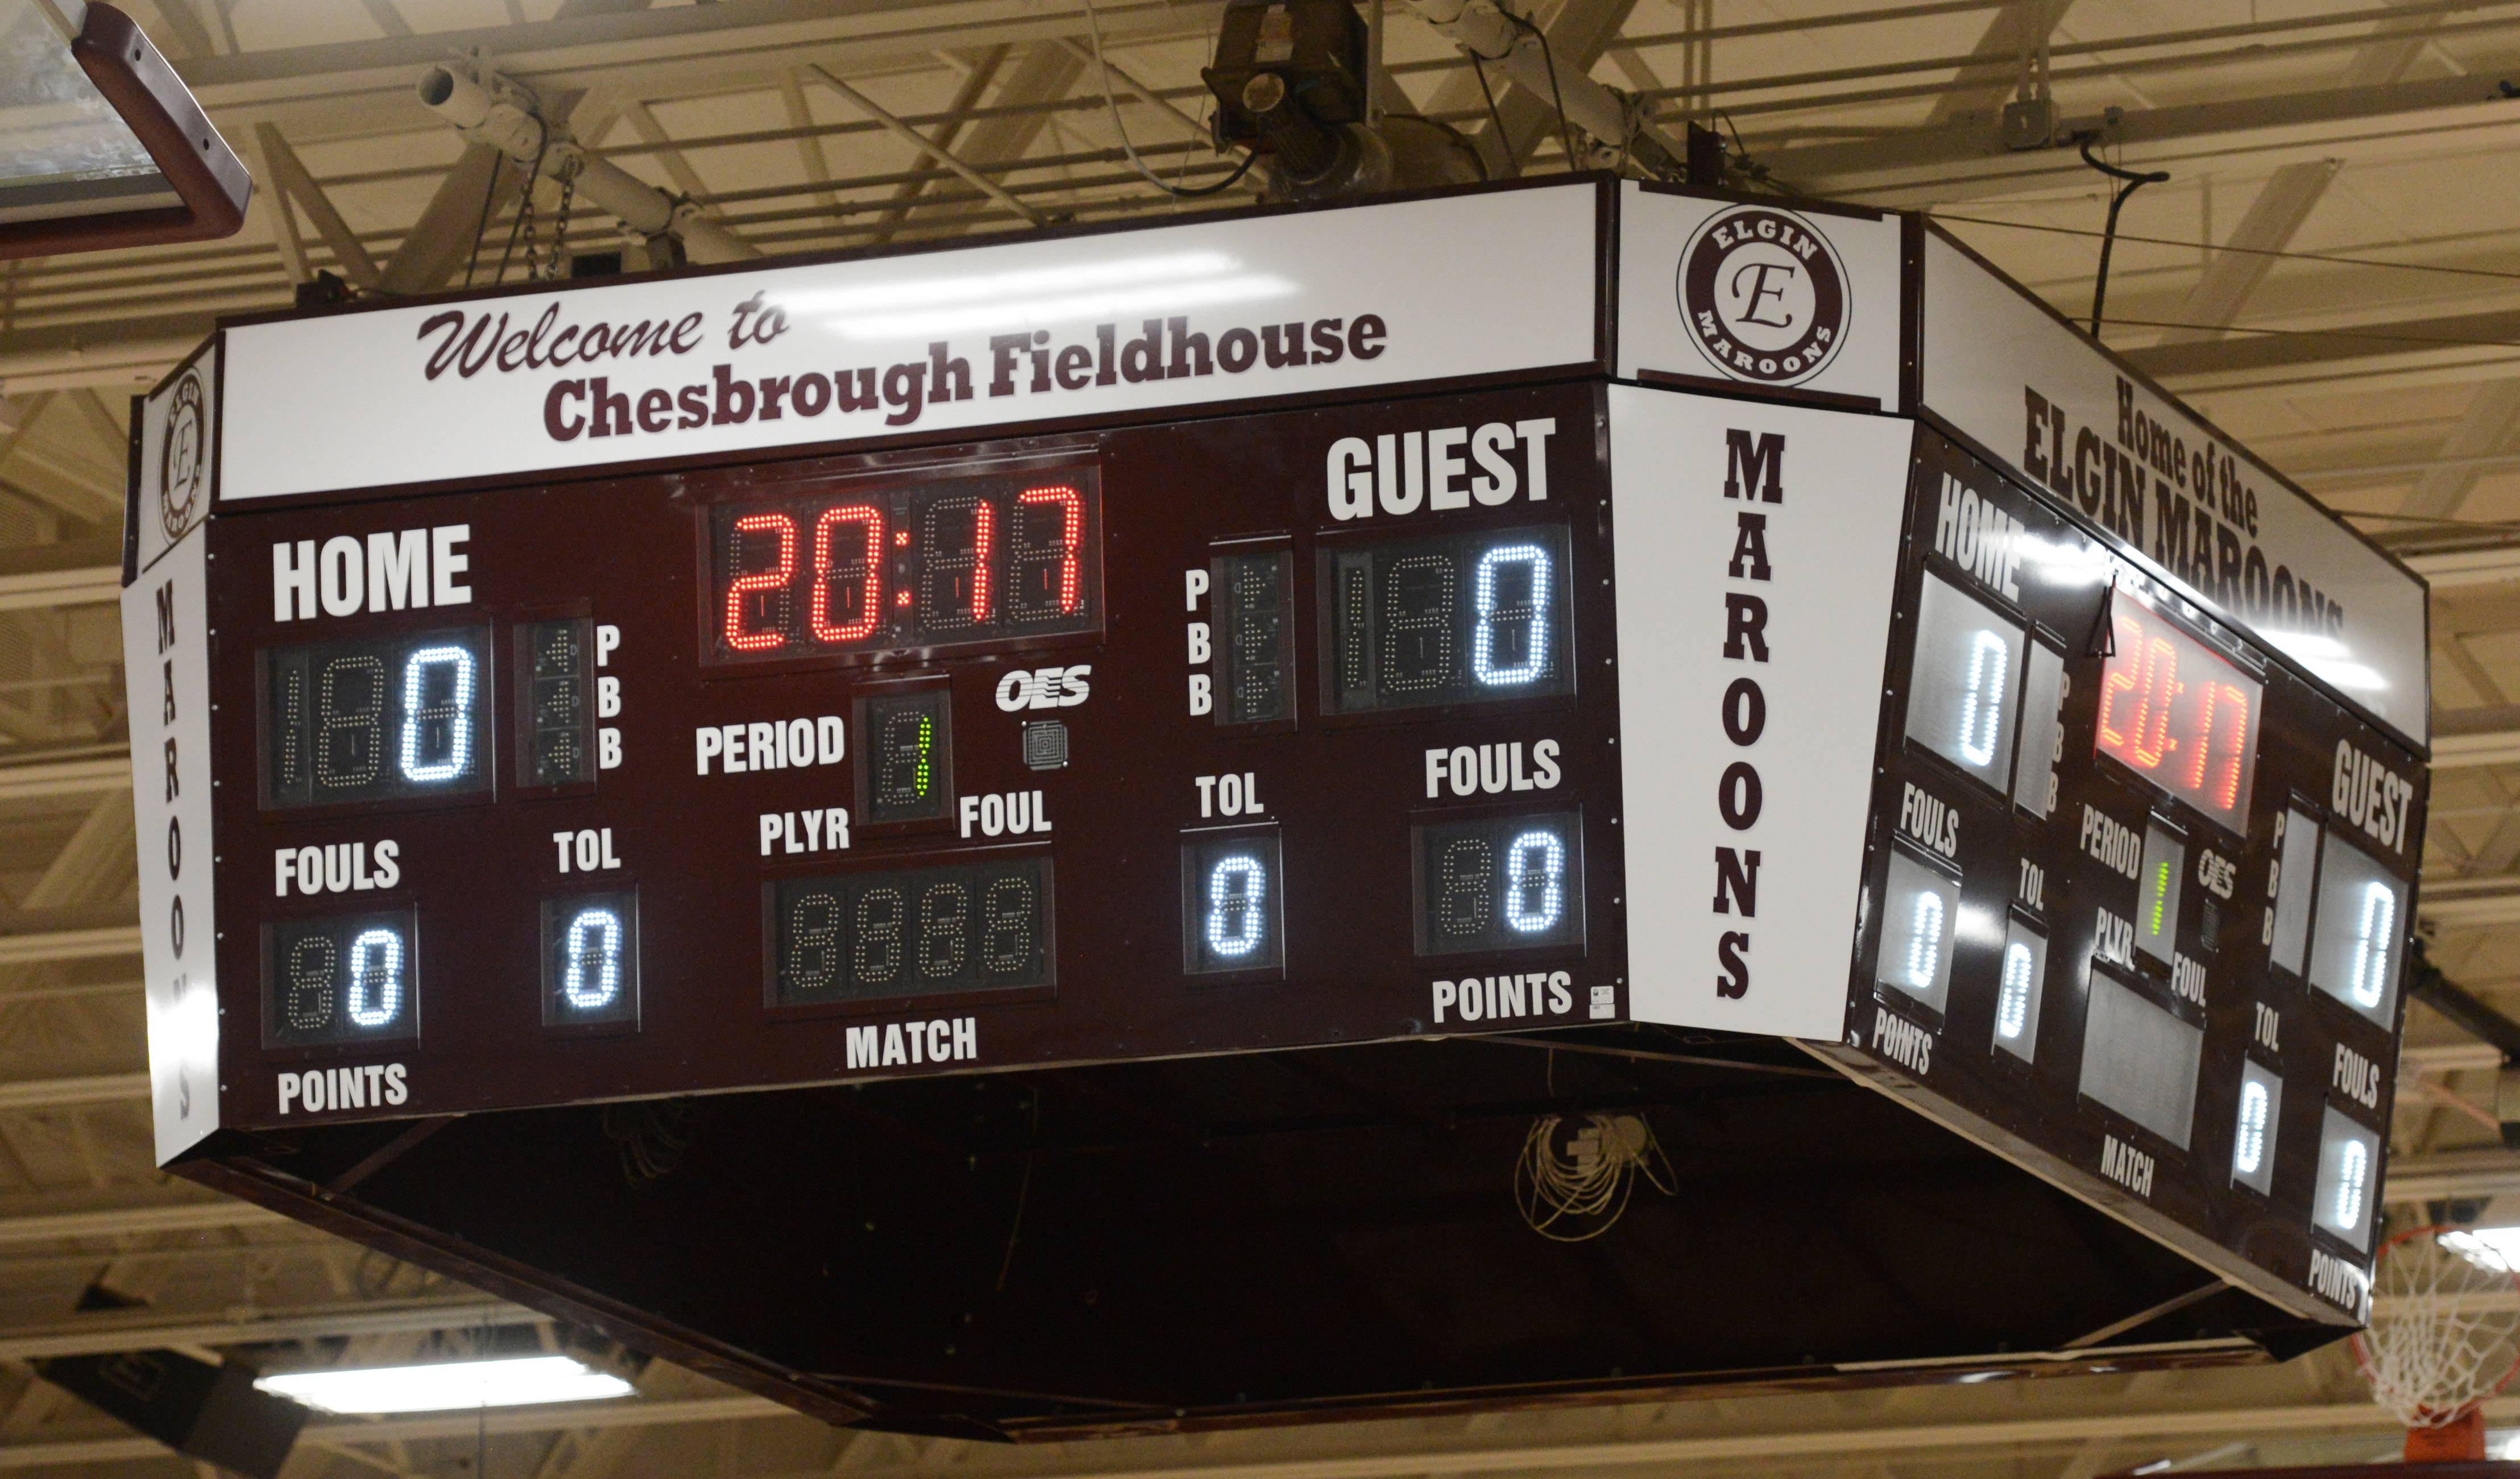 A new scoreboard was part of the recent renovations at Chesbrough Field House at Elgin High School.